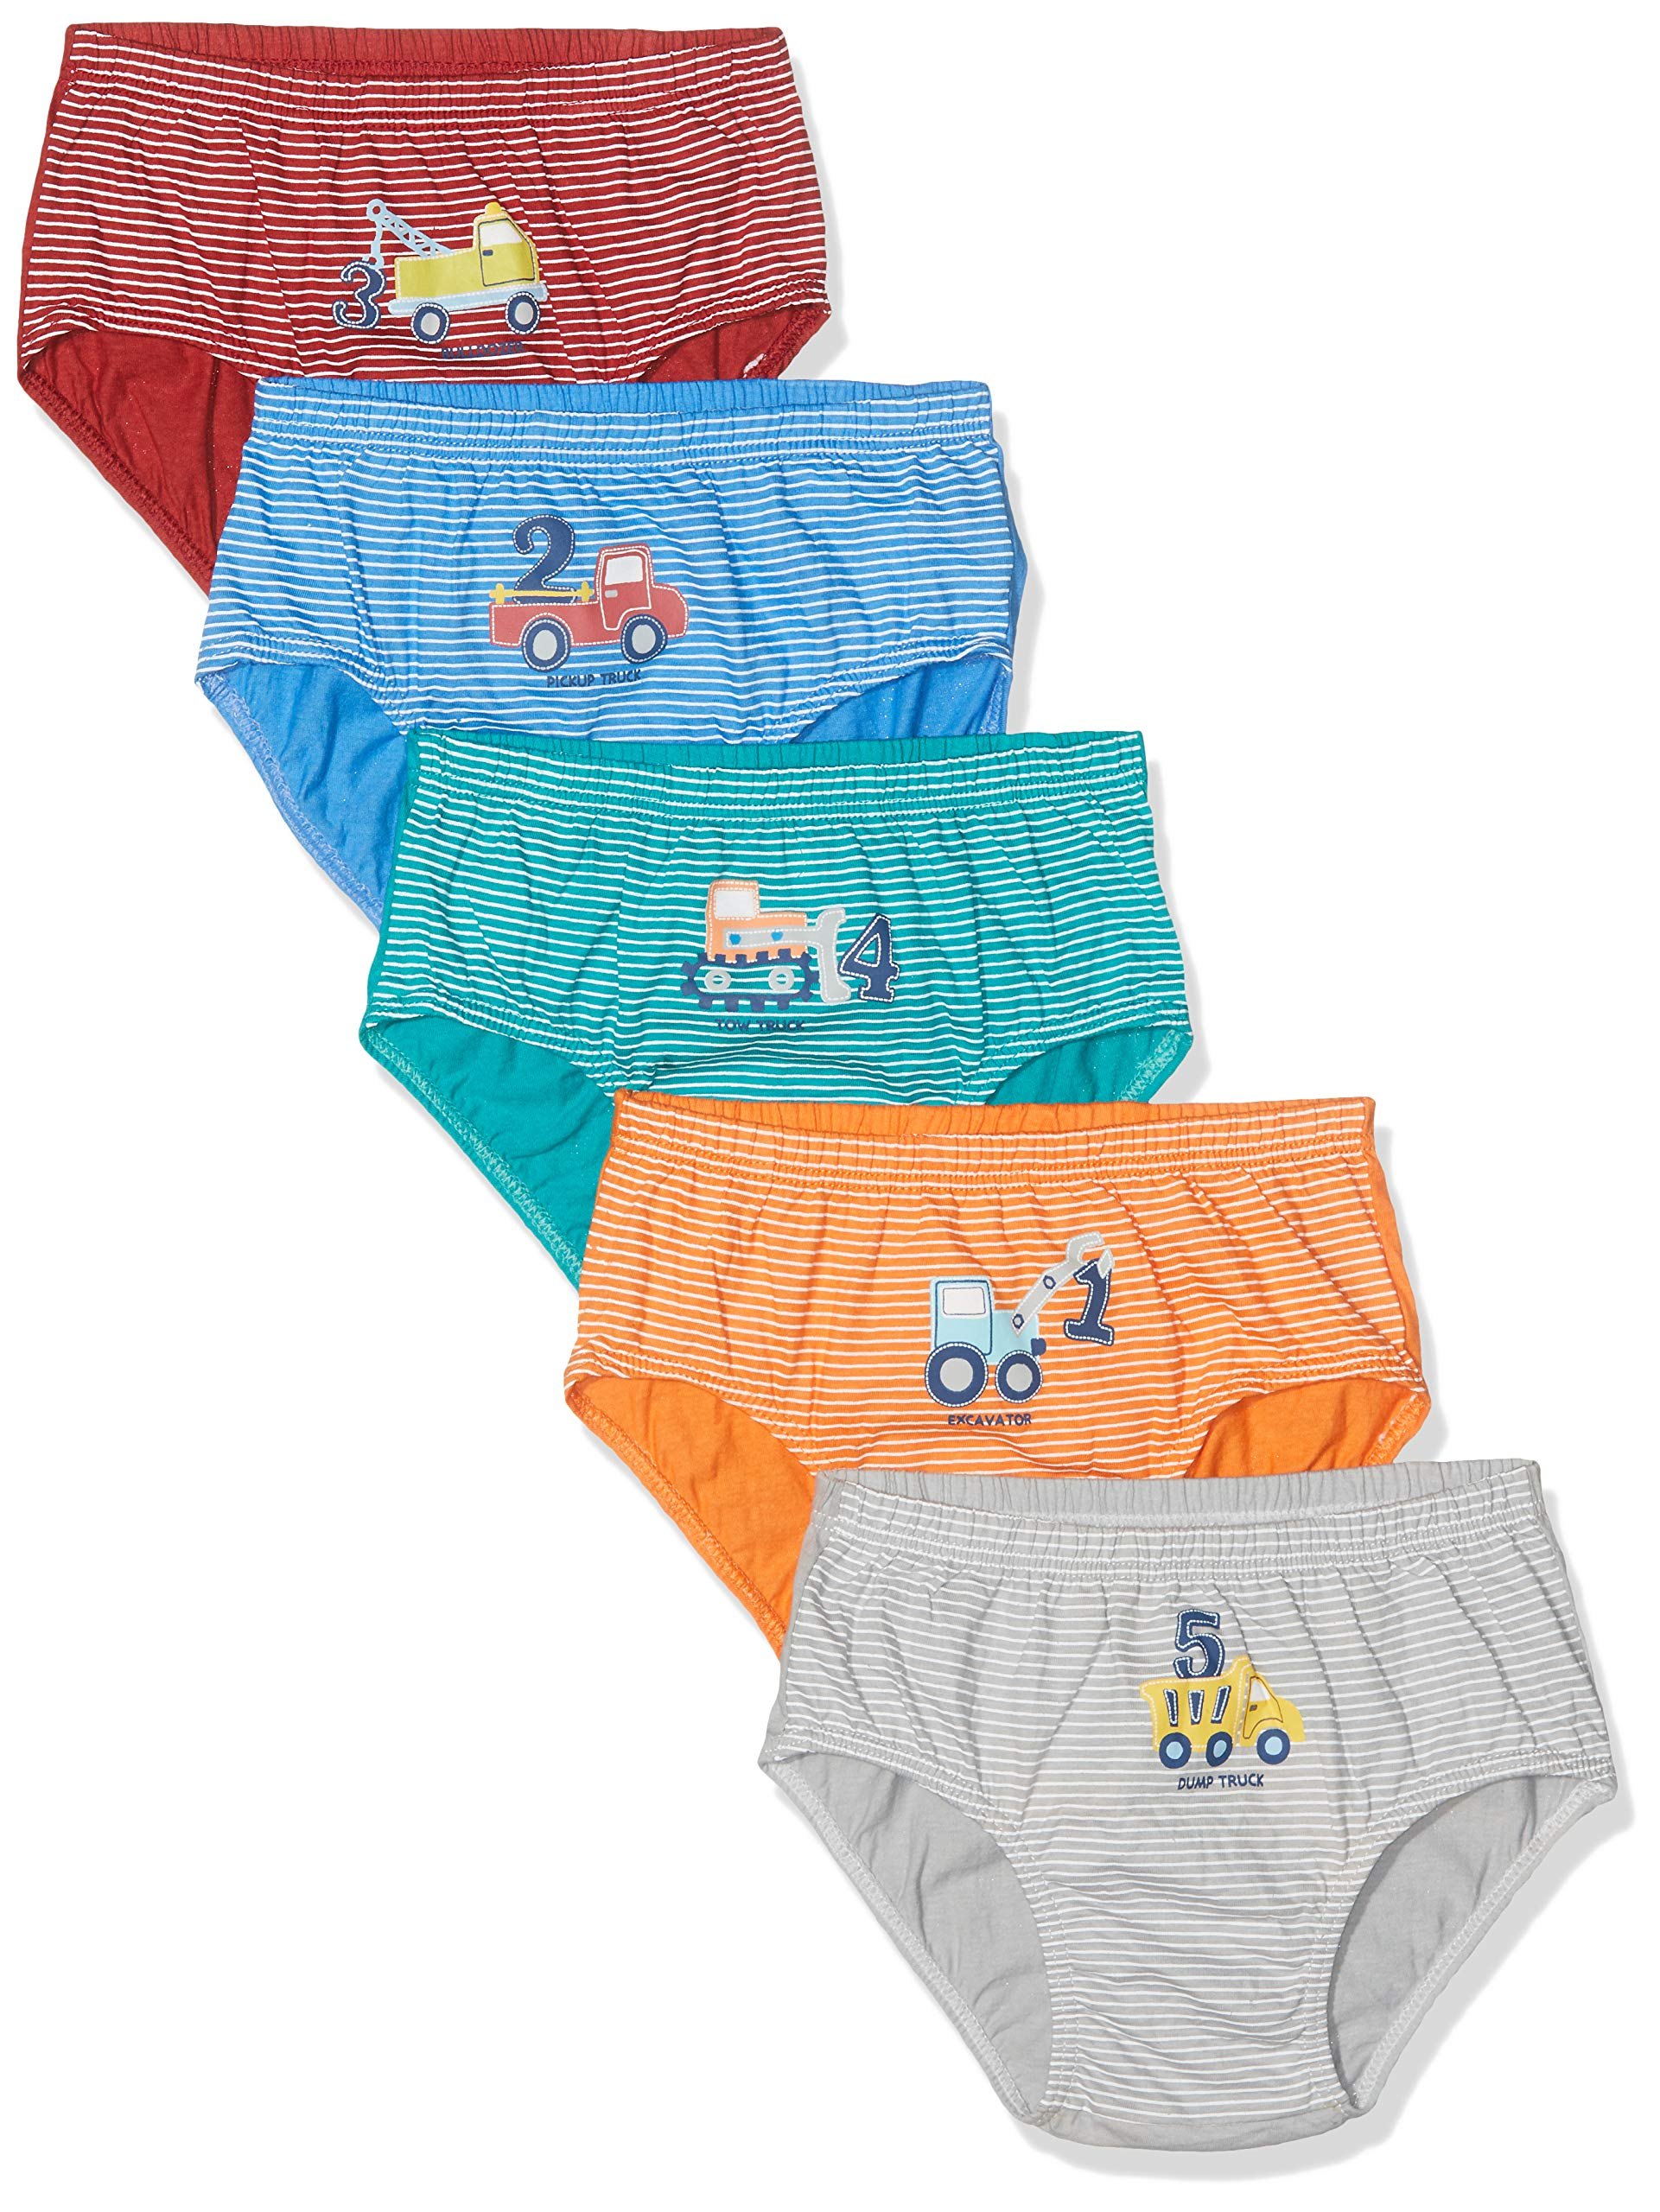 Espoy Boys Underwear Briefs Boxer Shorts Car Truck 100/% Cotton Elasticated Waist Kids Character Underpants Trunks Children Boxers Pants Ages 2-12 Years Pack of 5